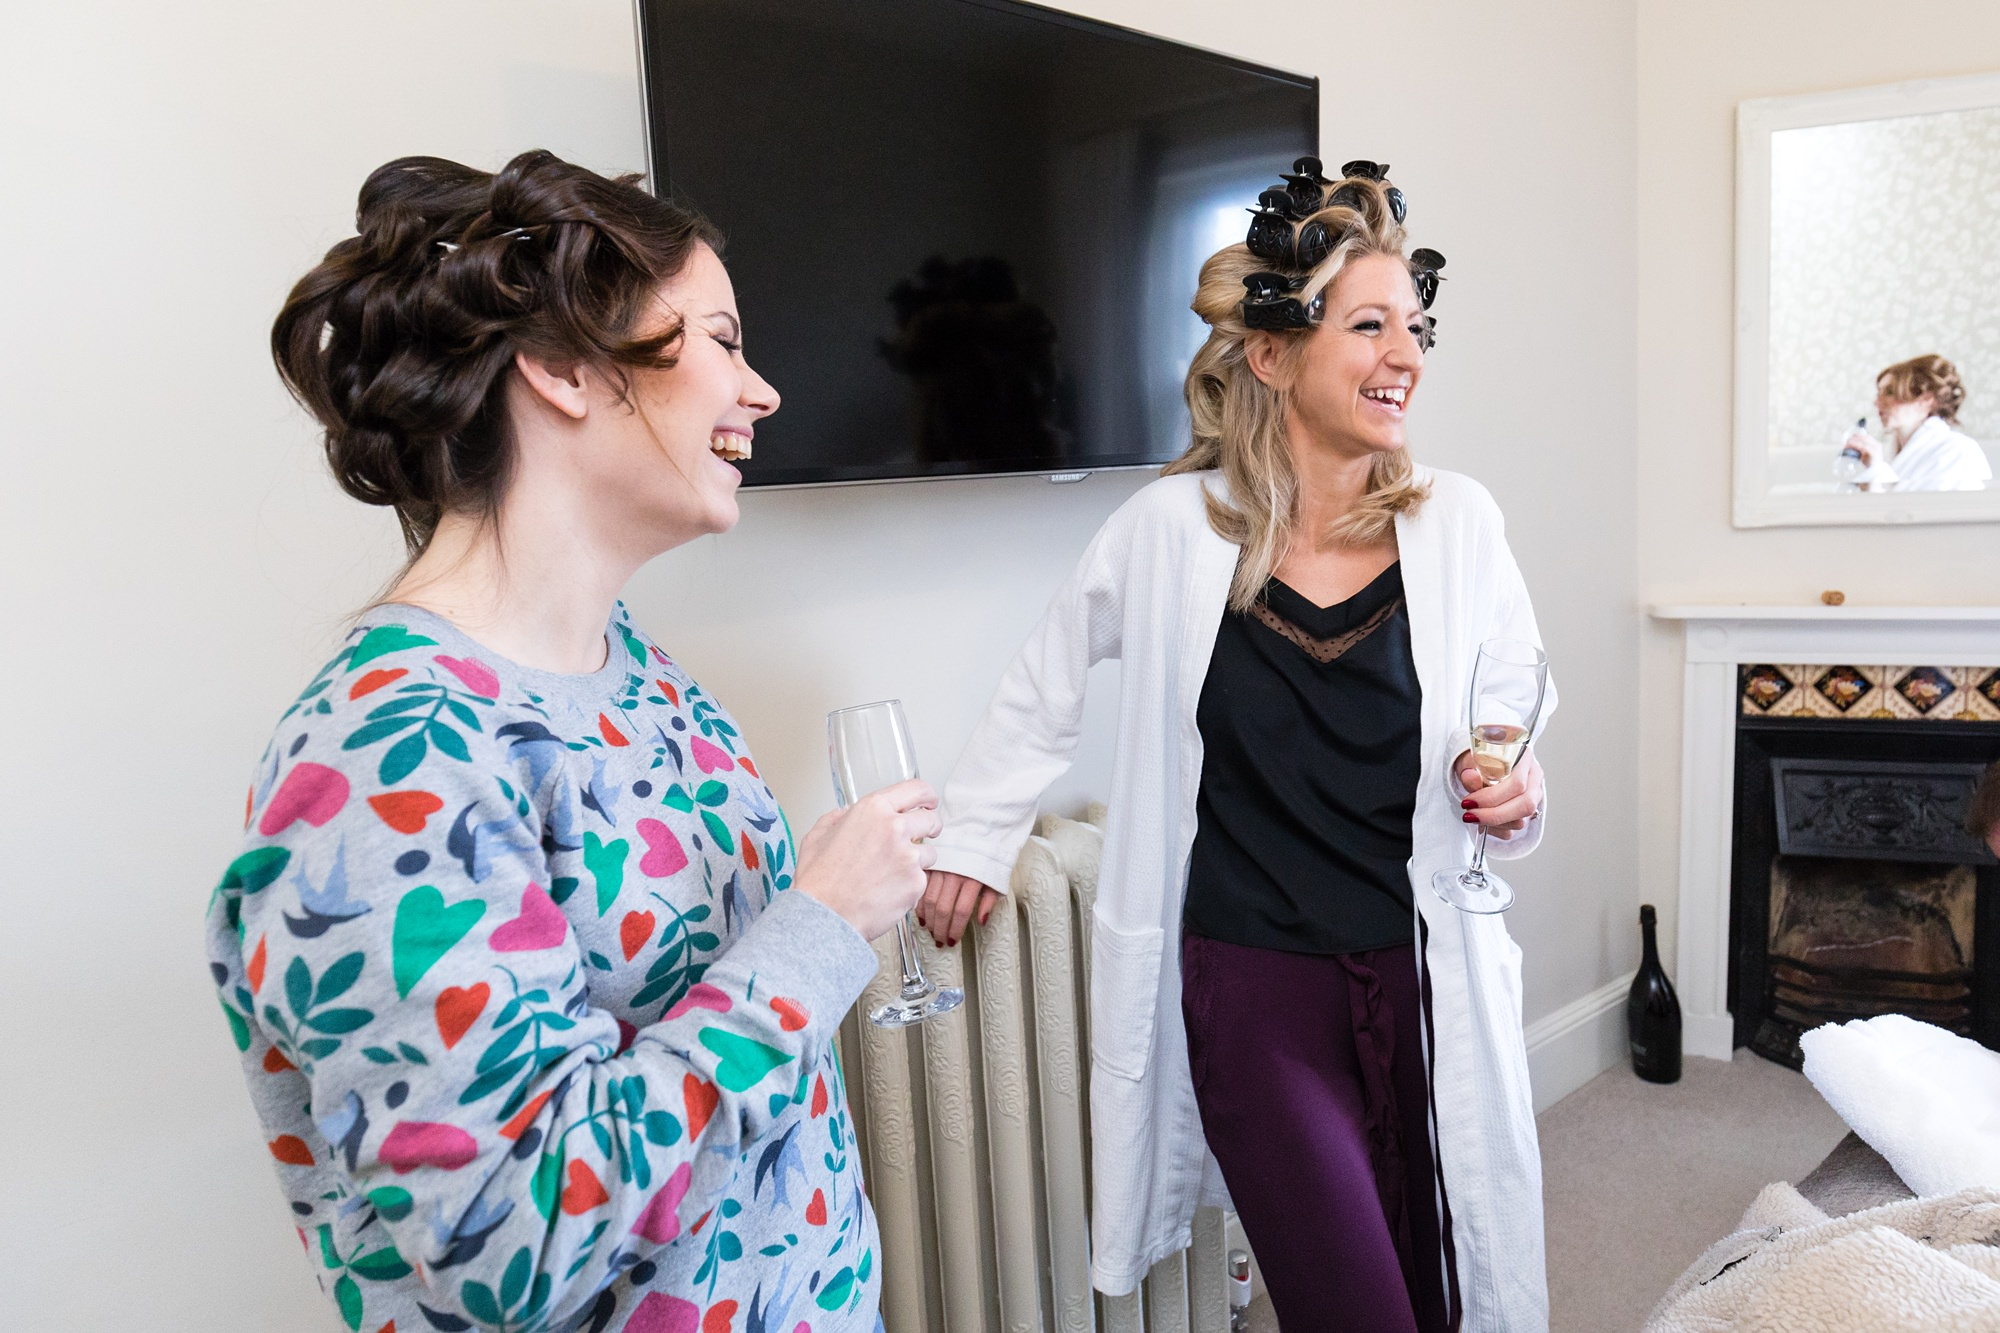 York Wedding Photography at Hornington Manor Farm bride laughing with bridesmaids with curlers in hair